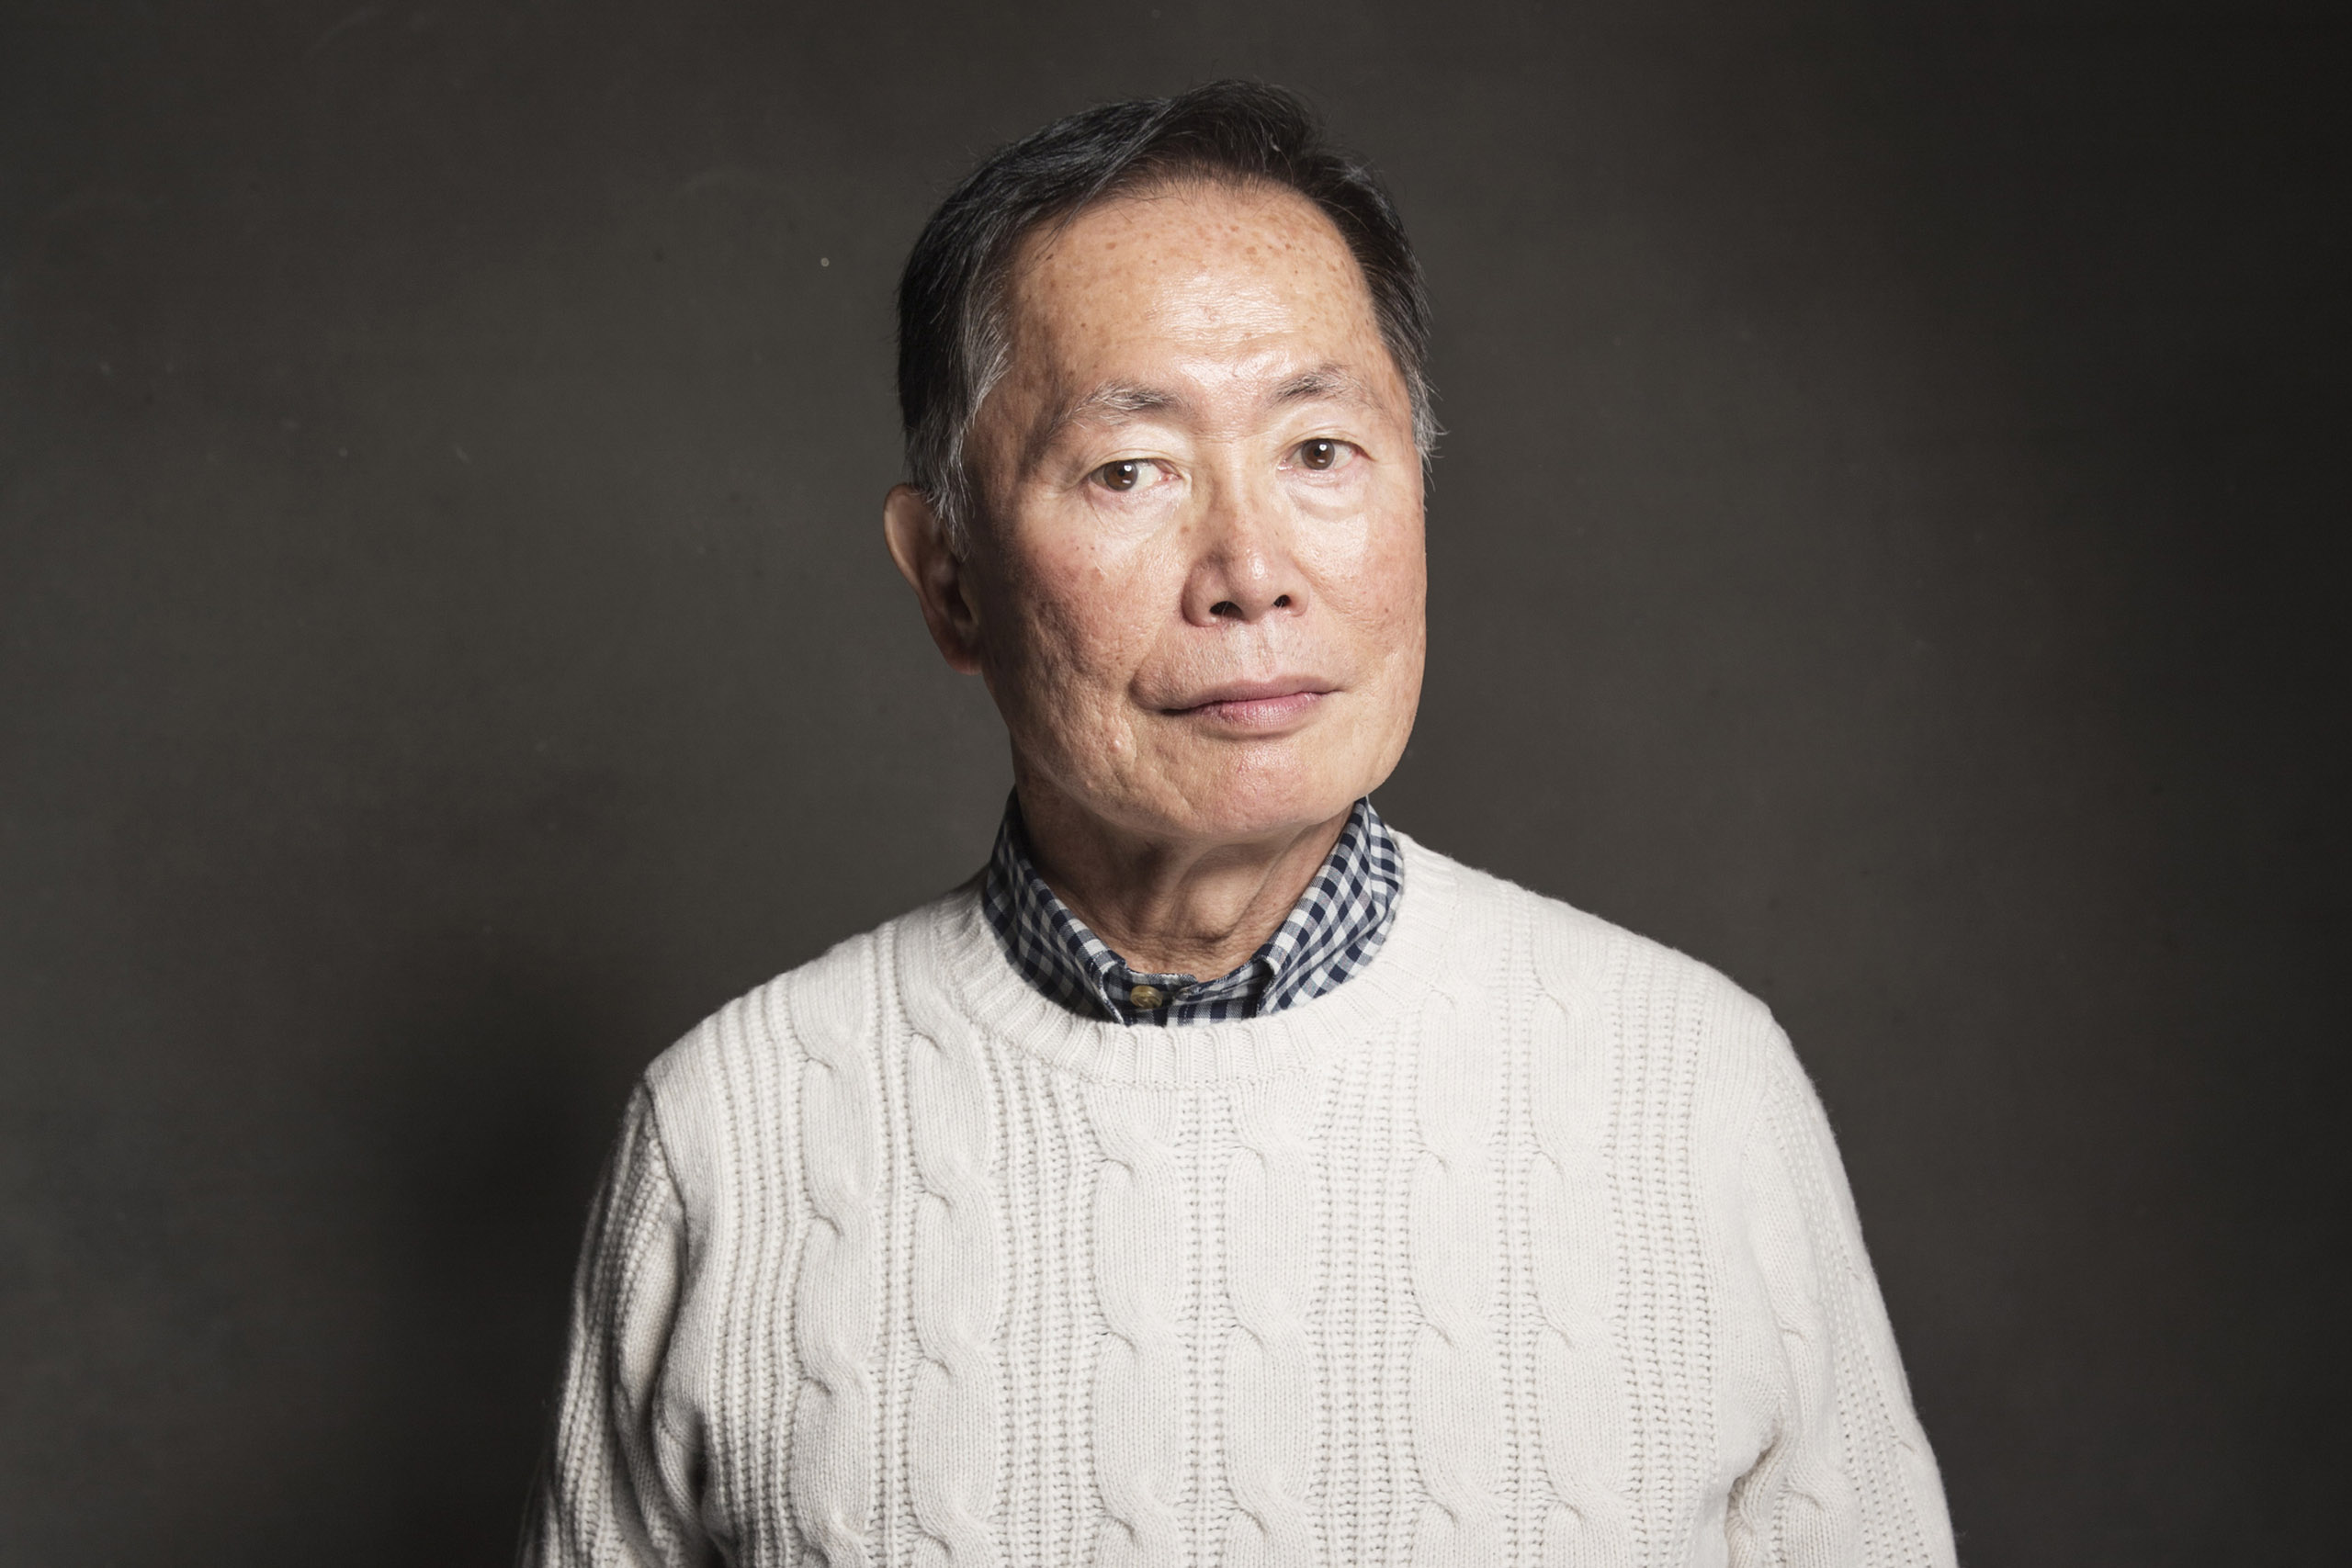 George Takei poses for a portrait during the Sundance Film Festival in Utah on Jan. 18, 2014.